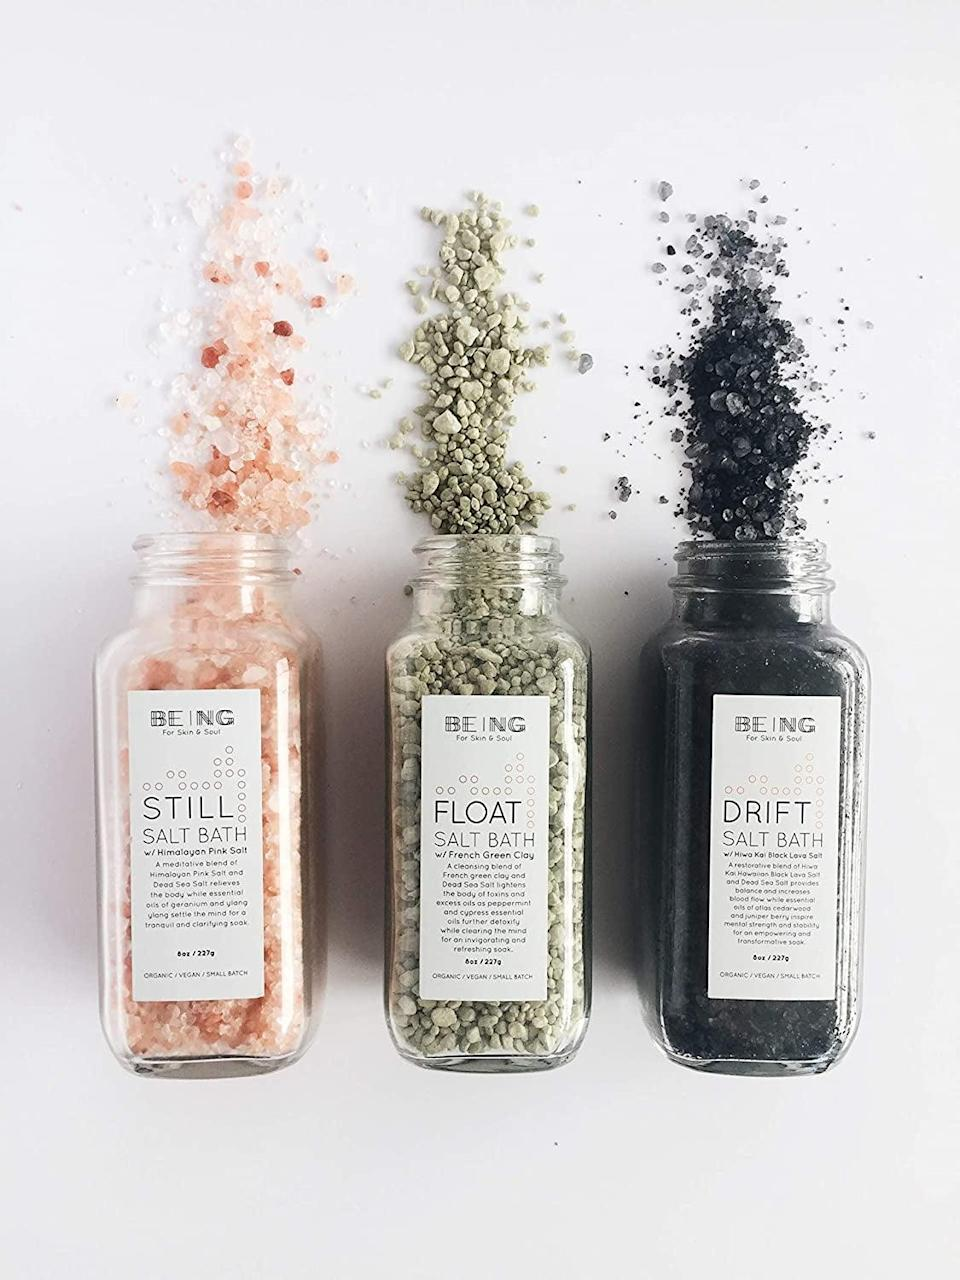 <p>Give yourself a relaxin bath with this <span>Live By Being Bath Salt Spa Gift Set Collection</span> ($56). It comes in a variety of mineral-rich salts like Himalayan pink salt, French green clay and dead sea salt, and Hiwa Kai black lava salt. </p>